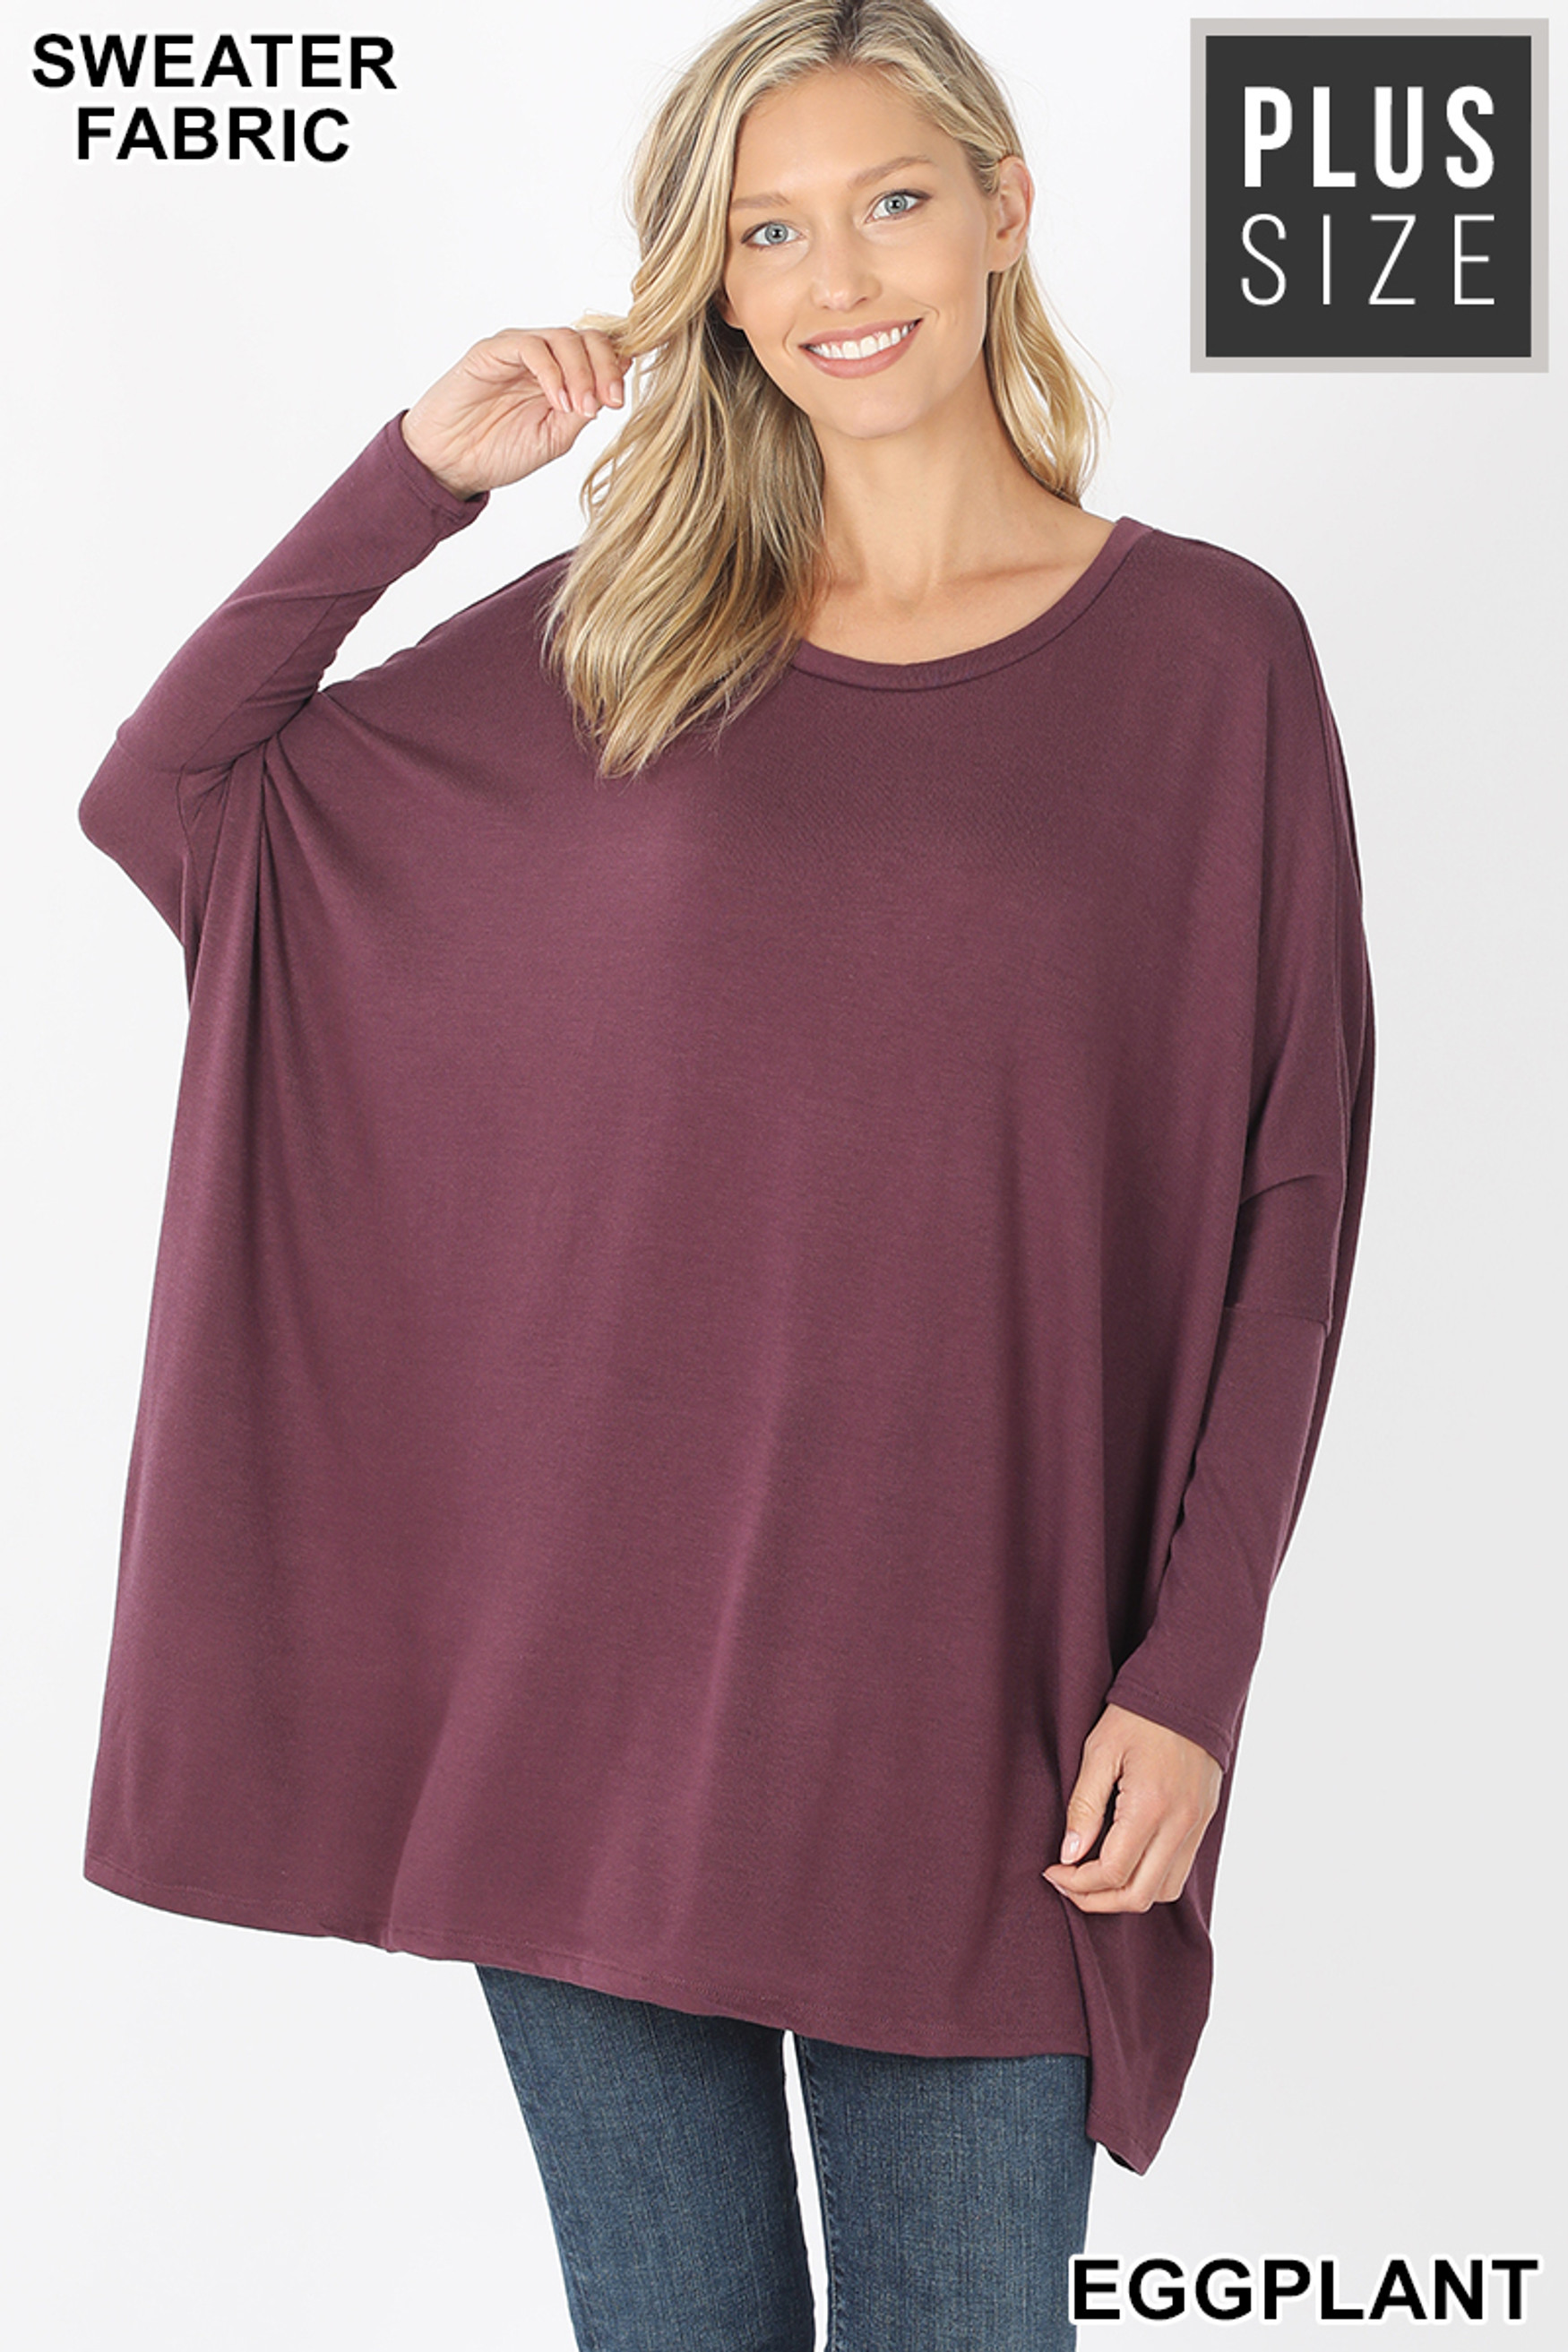 Front view of Eggplant Oversized Round Neck Poncho Plus Size Sweater